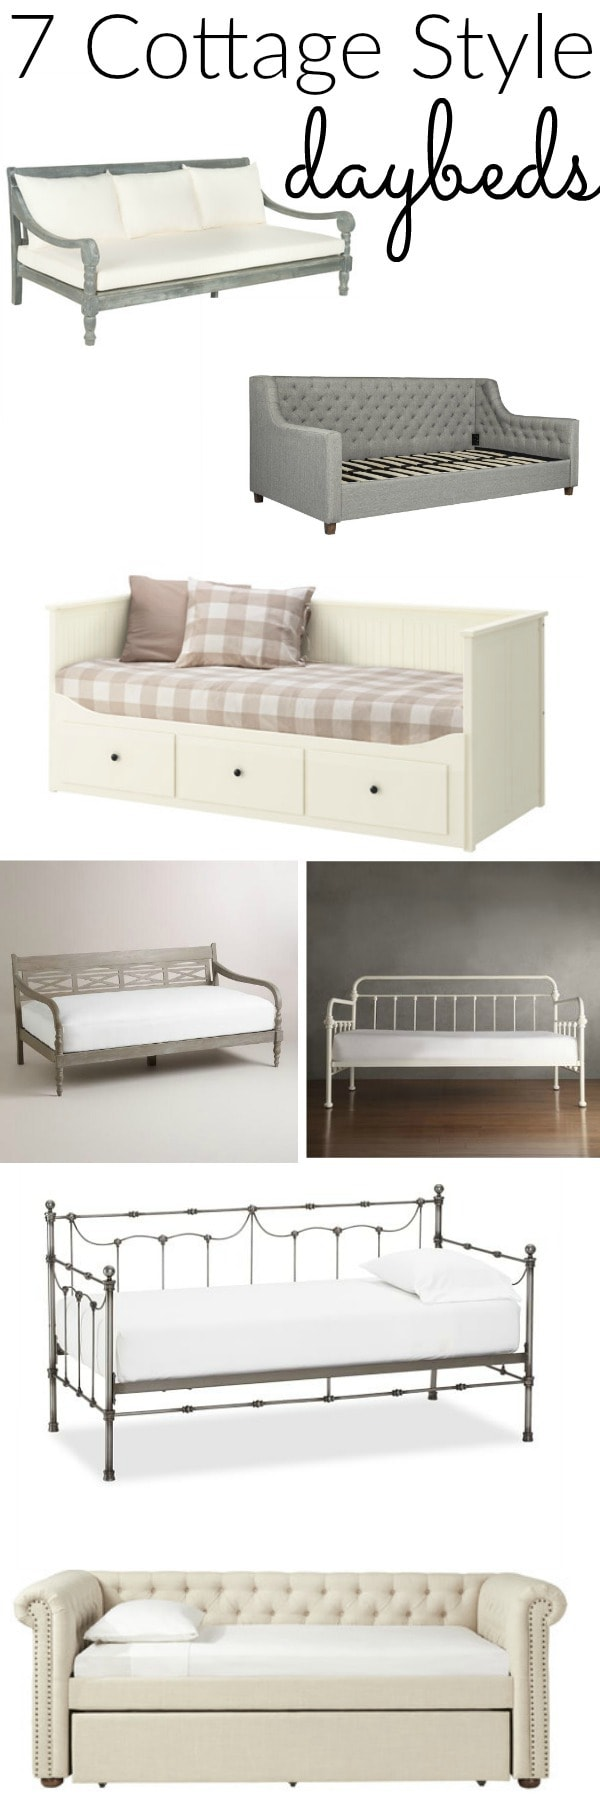 7 of the perfect cottage style daybeds! Perfect for using as a sofa, or bed in a bedroom, office, living room, & more!